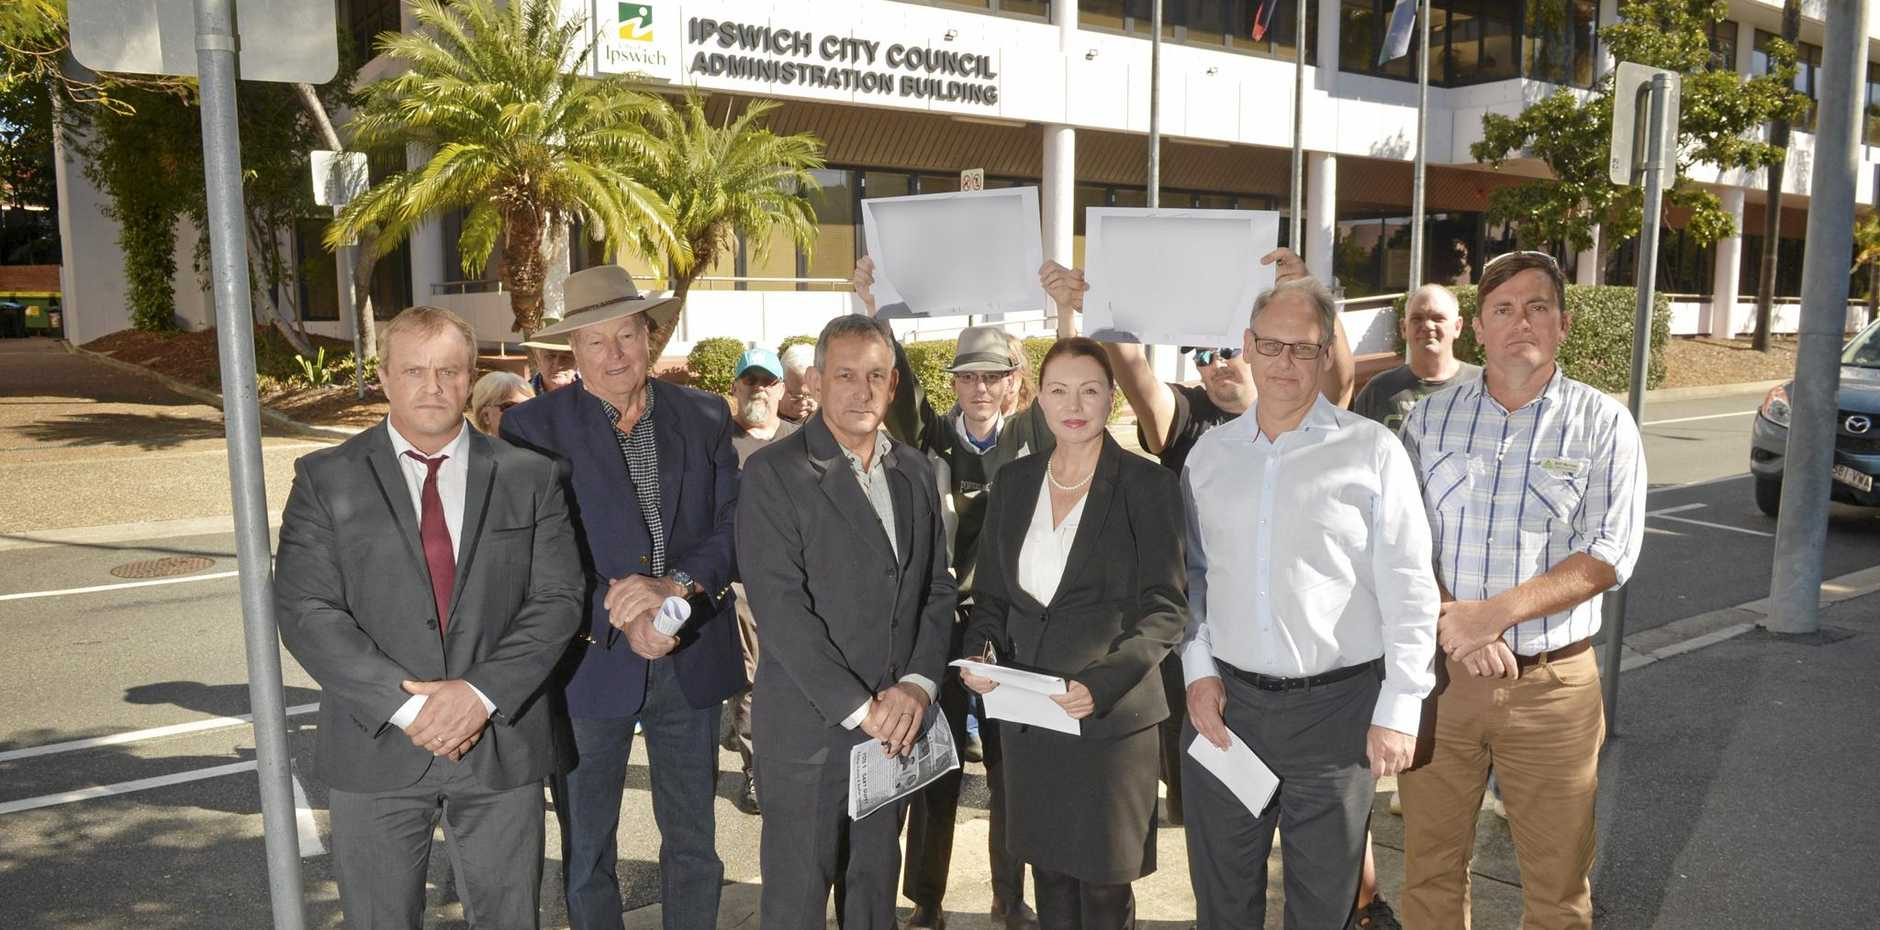 THE OTHERS: Voters may see some familiar faces when some Ipswich residents head back to the polls to elect a new divisional councillor . Pictured: (L-R) Paul Rix, Jack Paff, Gary Duffy, Patricia Petersen, Peter Robinson and Brett Morrissey.